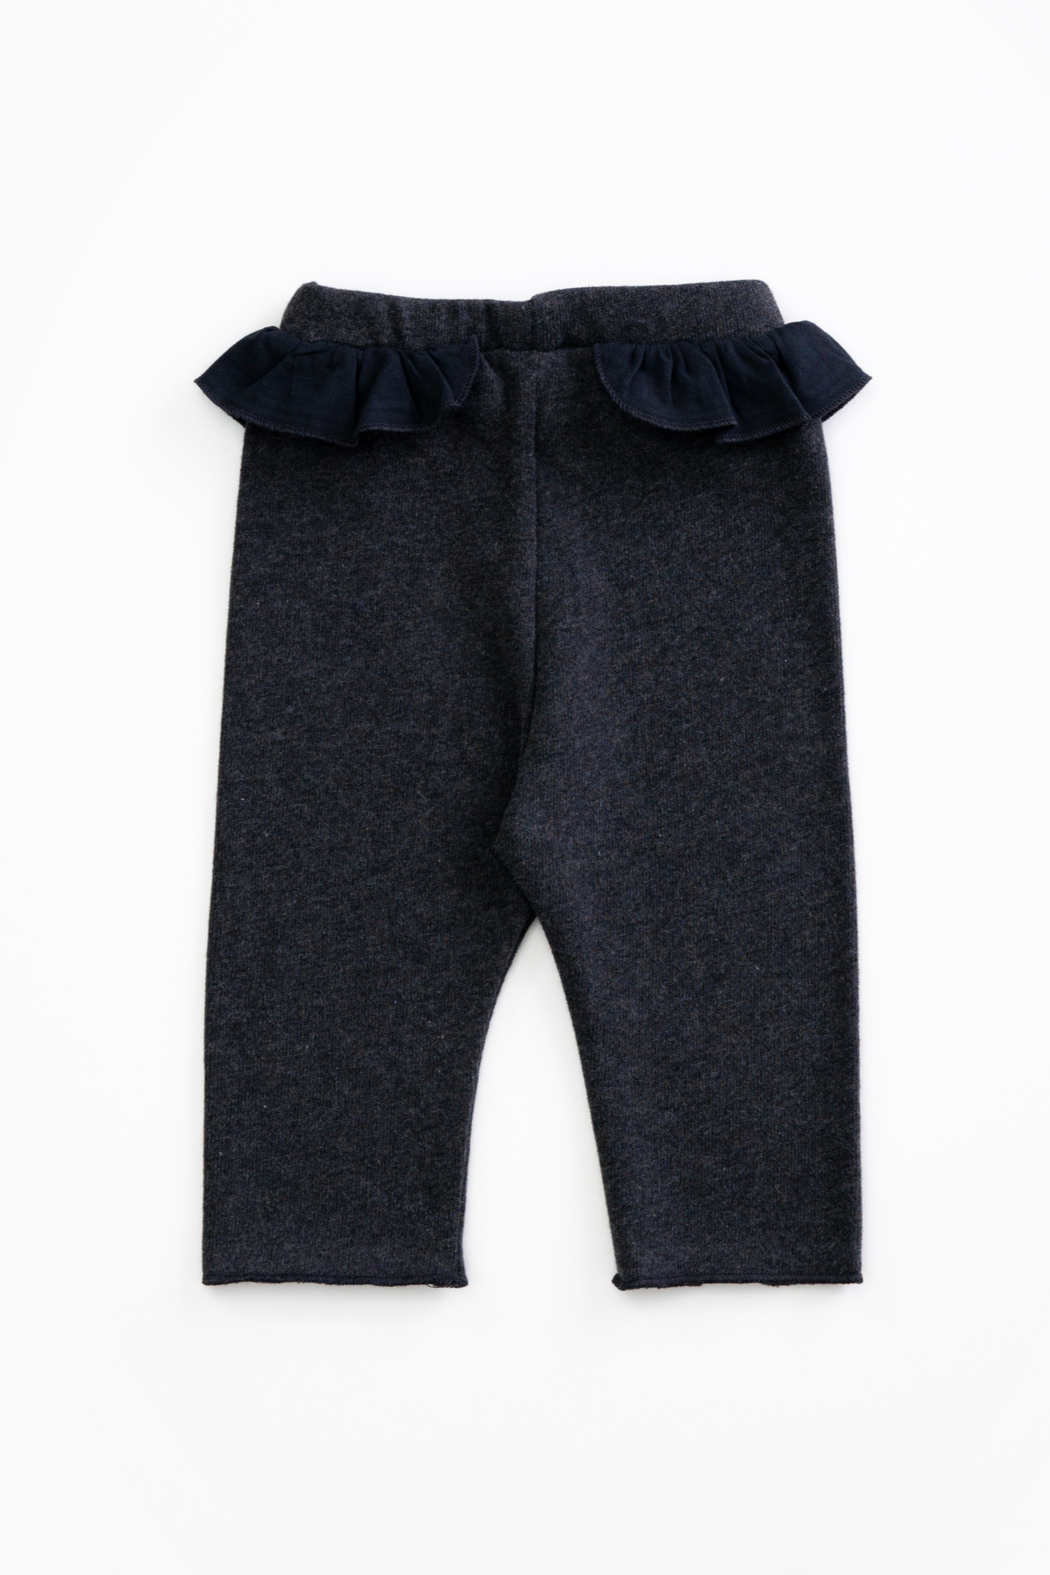 Play Up Organic Cotton Jersey Leggings with frill for baby girls - Front Full Image